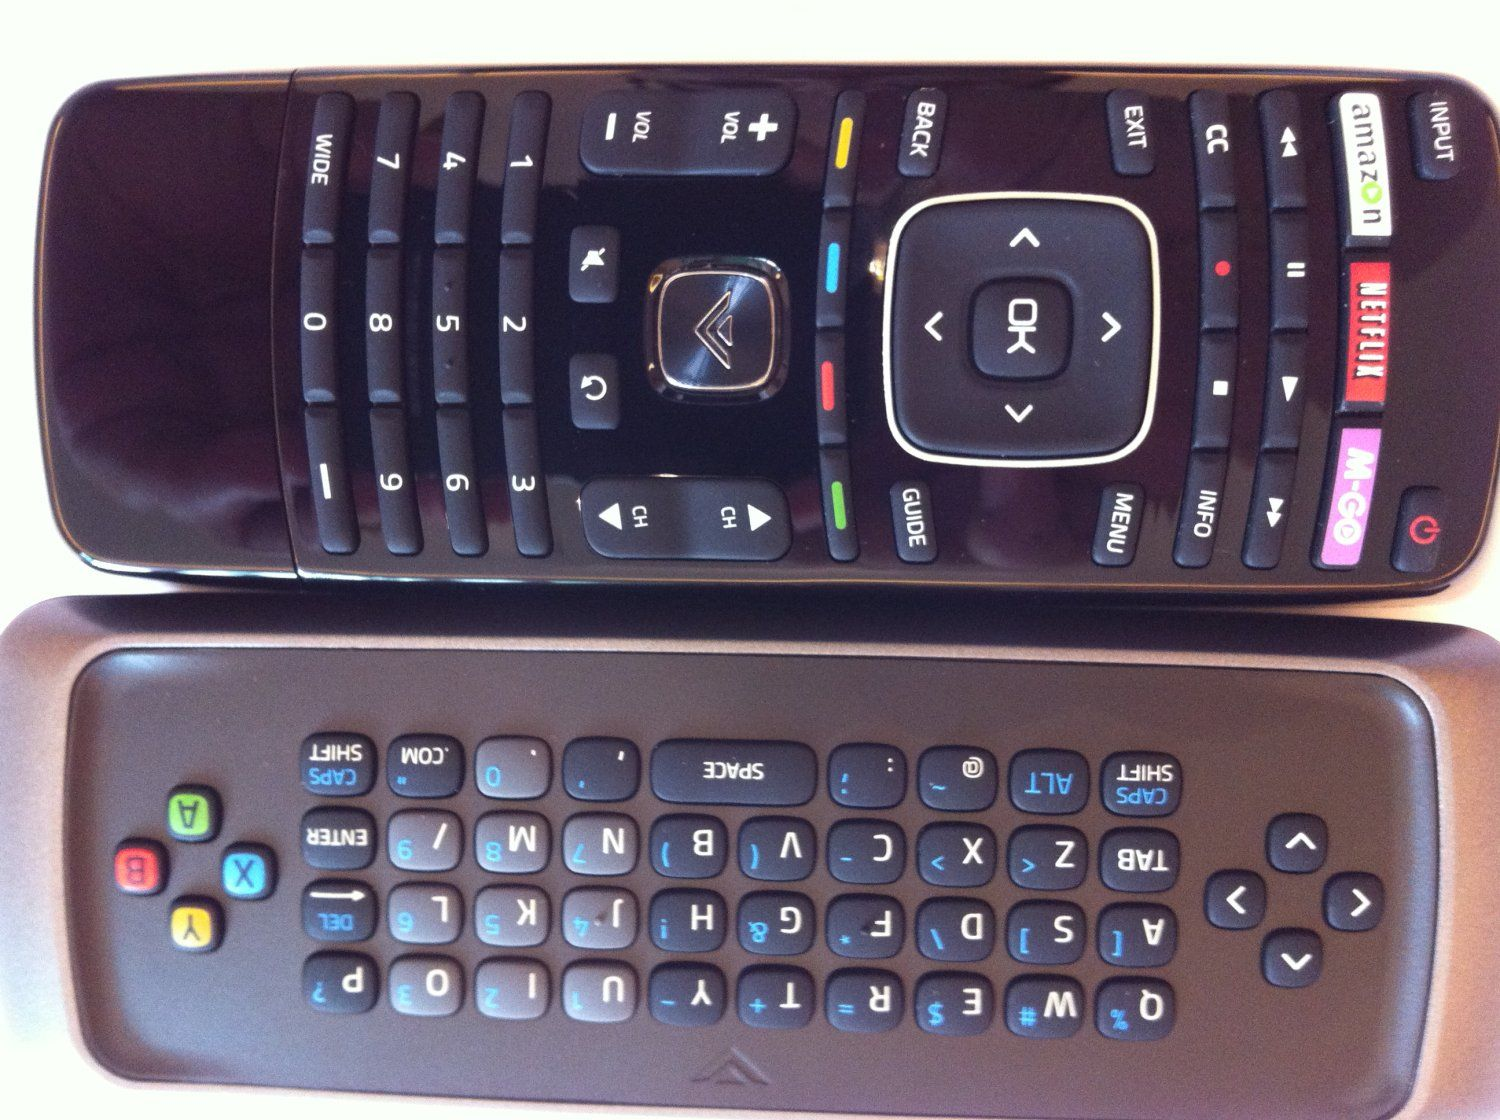 New Smart TV Remote controlwith Qwerty dual side